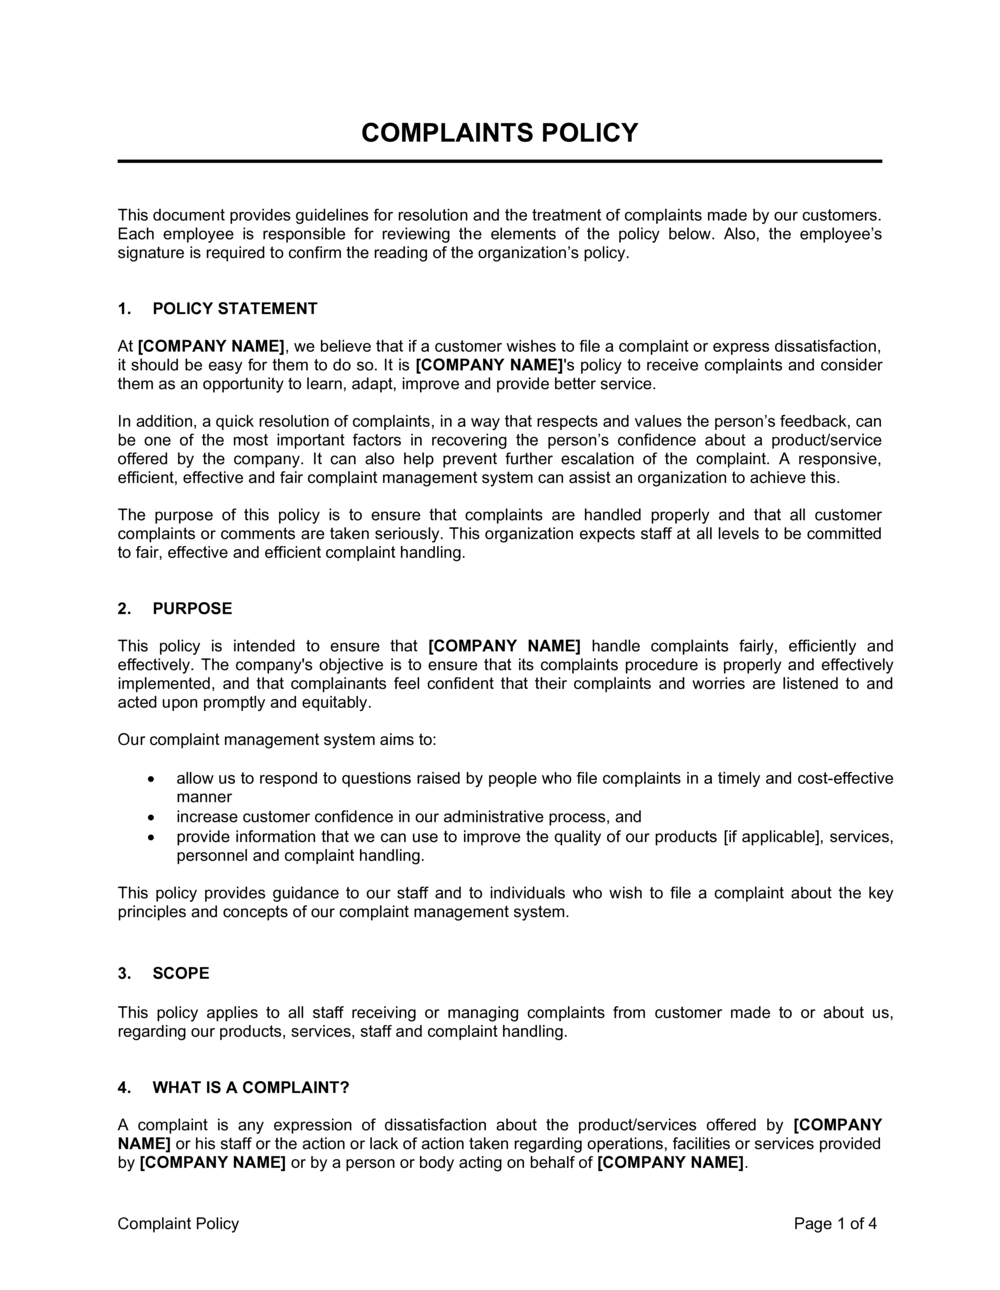 Business-in-a-Box's Complaint Policy Template